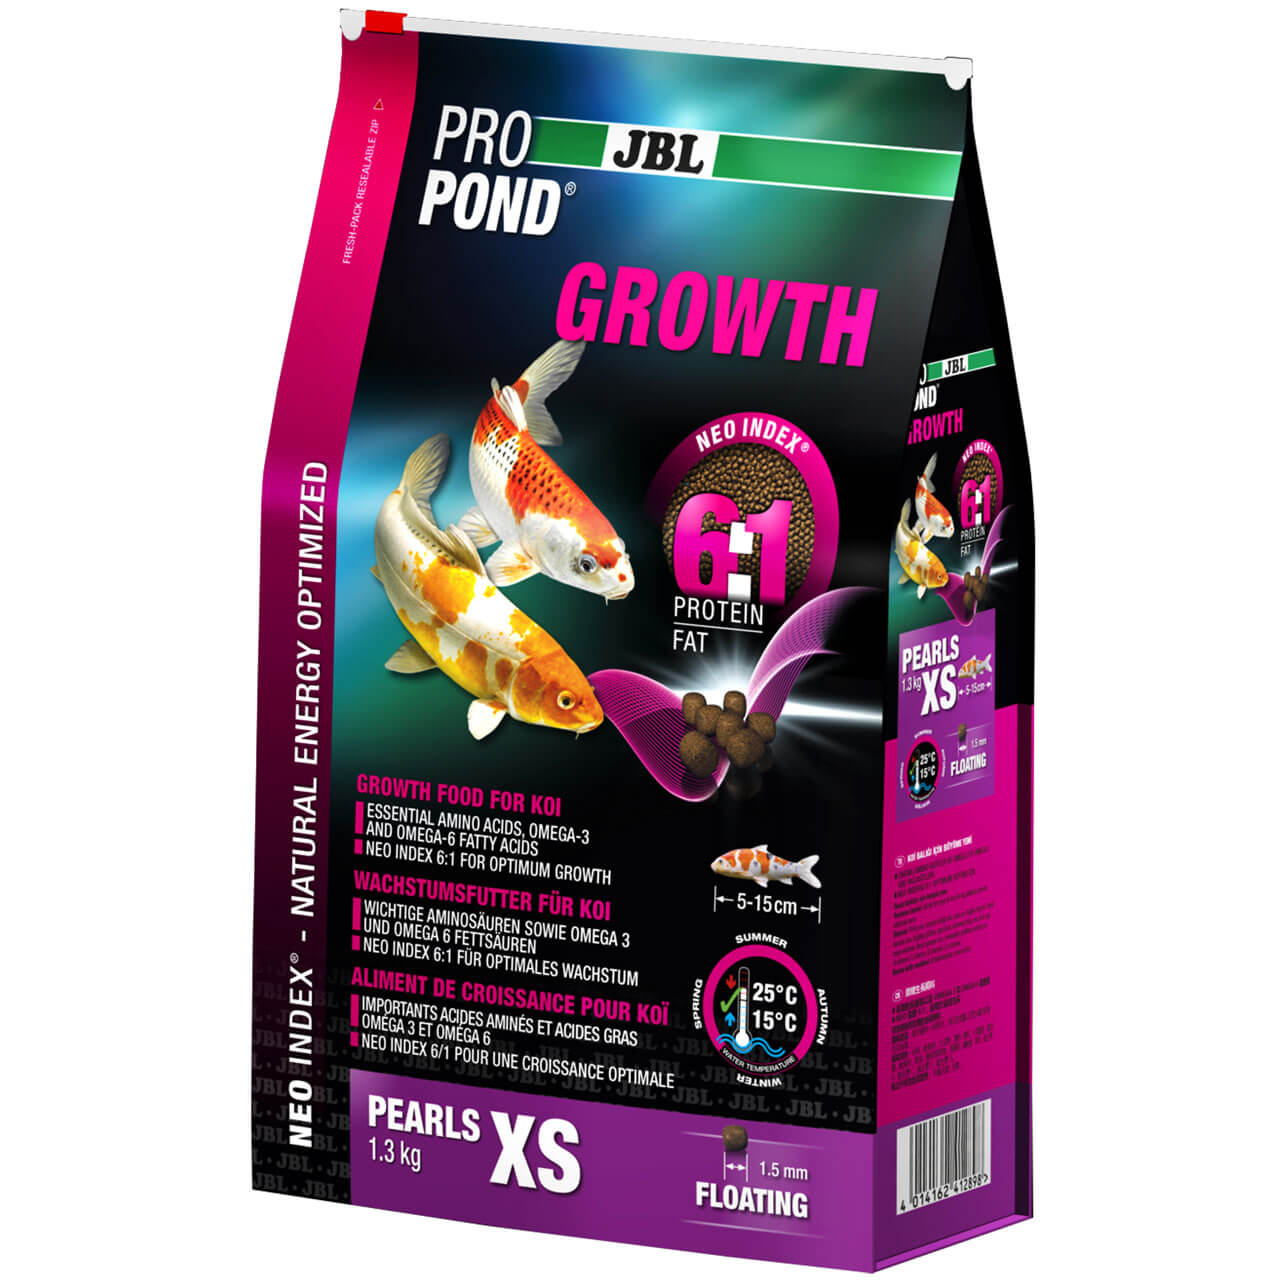 ProPond Growth